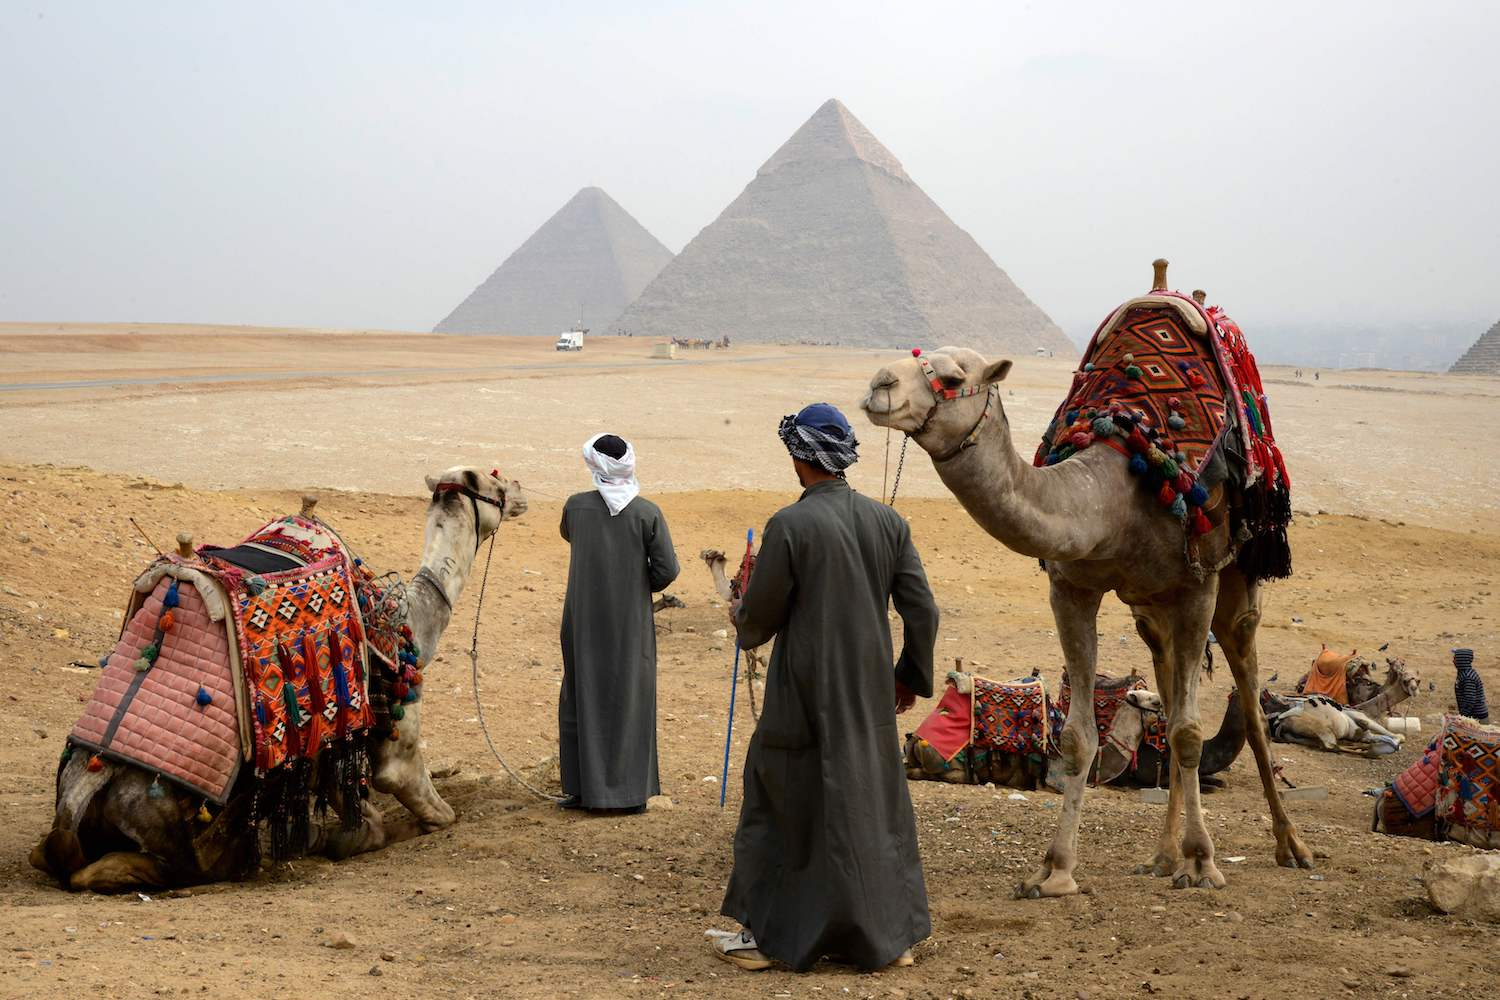 TOPSHOT - A picture taken on February 15, 2018 shows Egyptian tour guides preparing a caravan of camels for tourists as they sit across the Giza plateau from (R to L) the Great Pyramid of Khufu (Cheops), the Pyramid of Khafre (Chephren), and the Pyramid of Menkaure, on the southwestern outskirts of the capital Cairo. / AFP PHOTO / MARIO GOLDMAN        (Photo credit should read MARIO GOLDMAN/AFP/Getty Images)